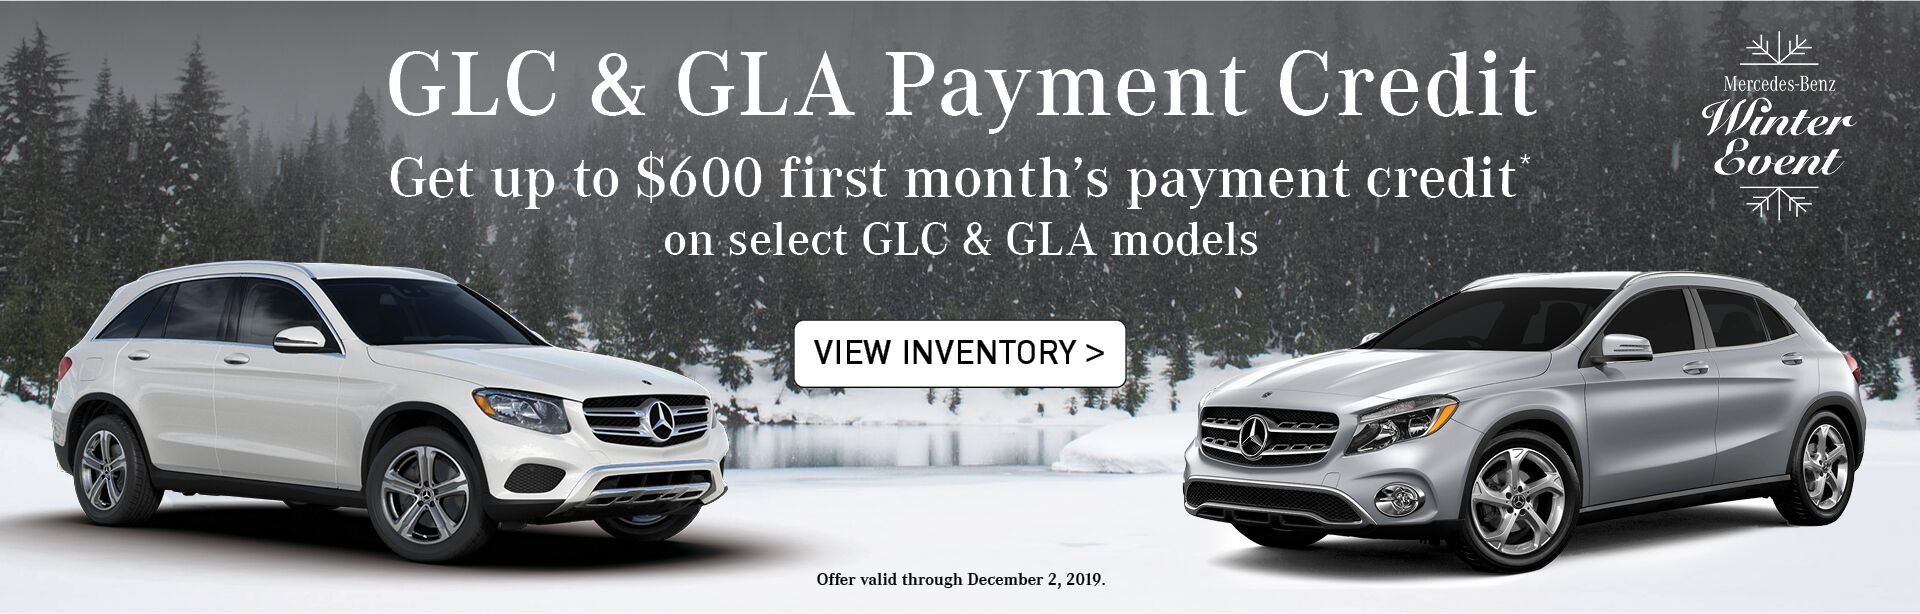 Receive up to $600 first month's payment credit on select 2019/2020 GLC & GLA models